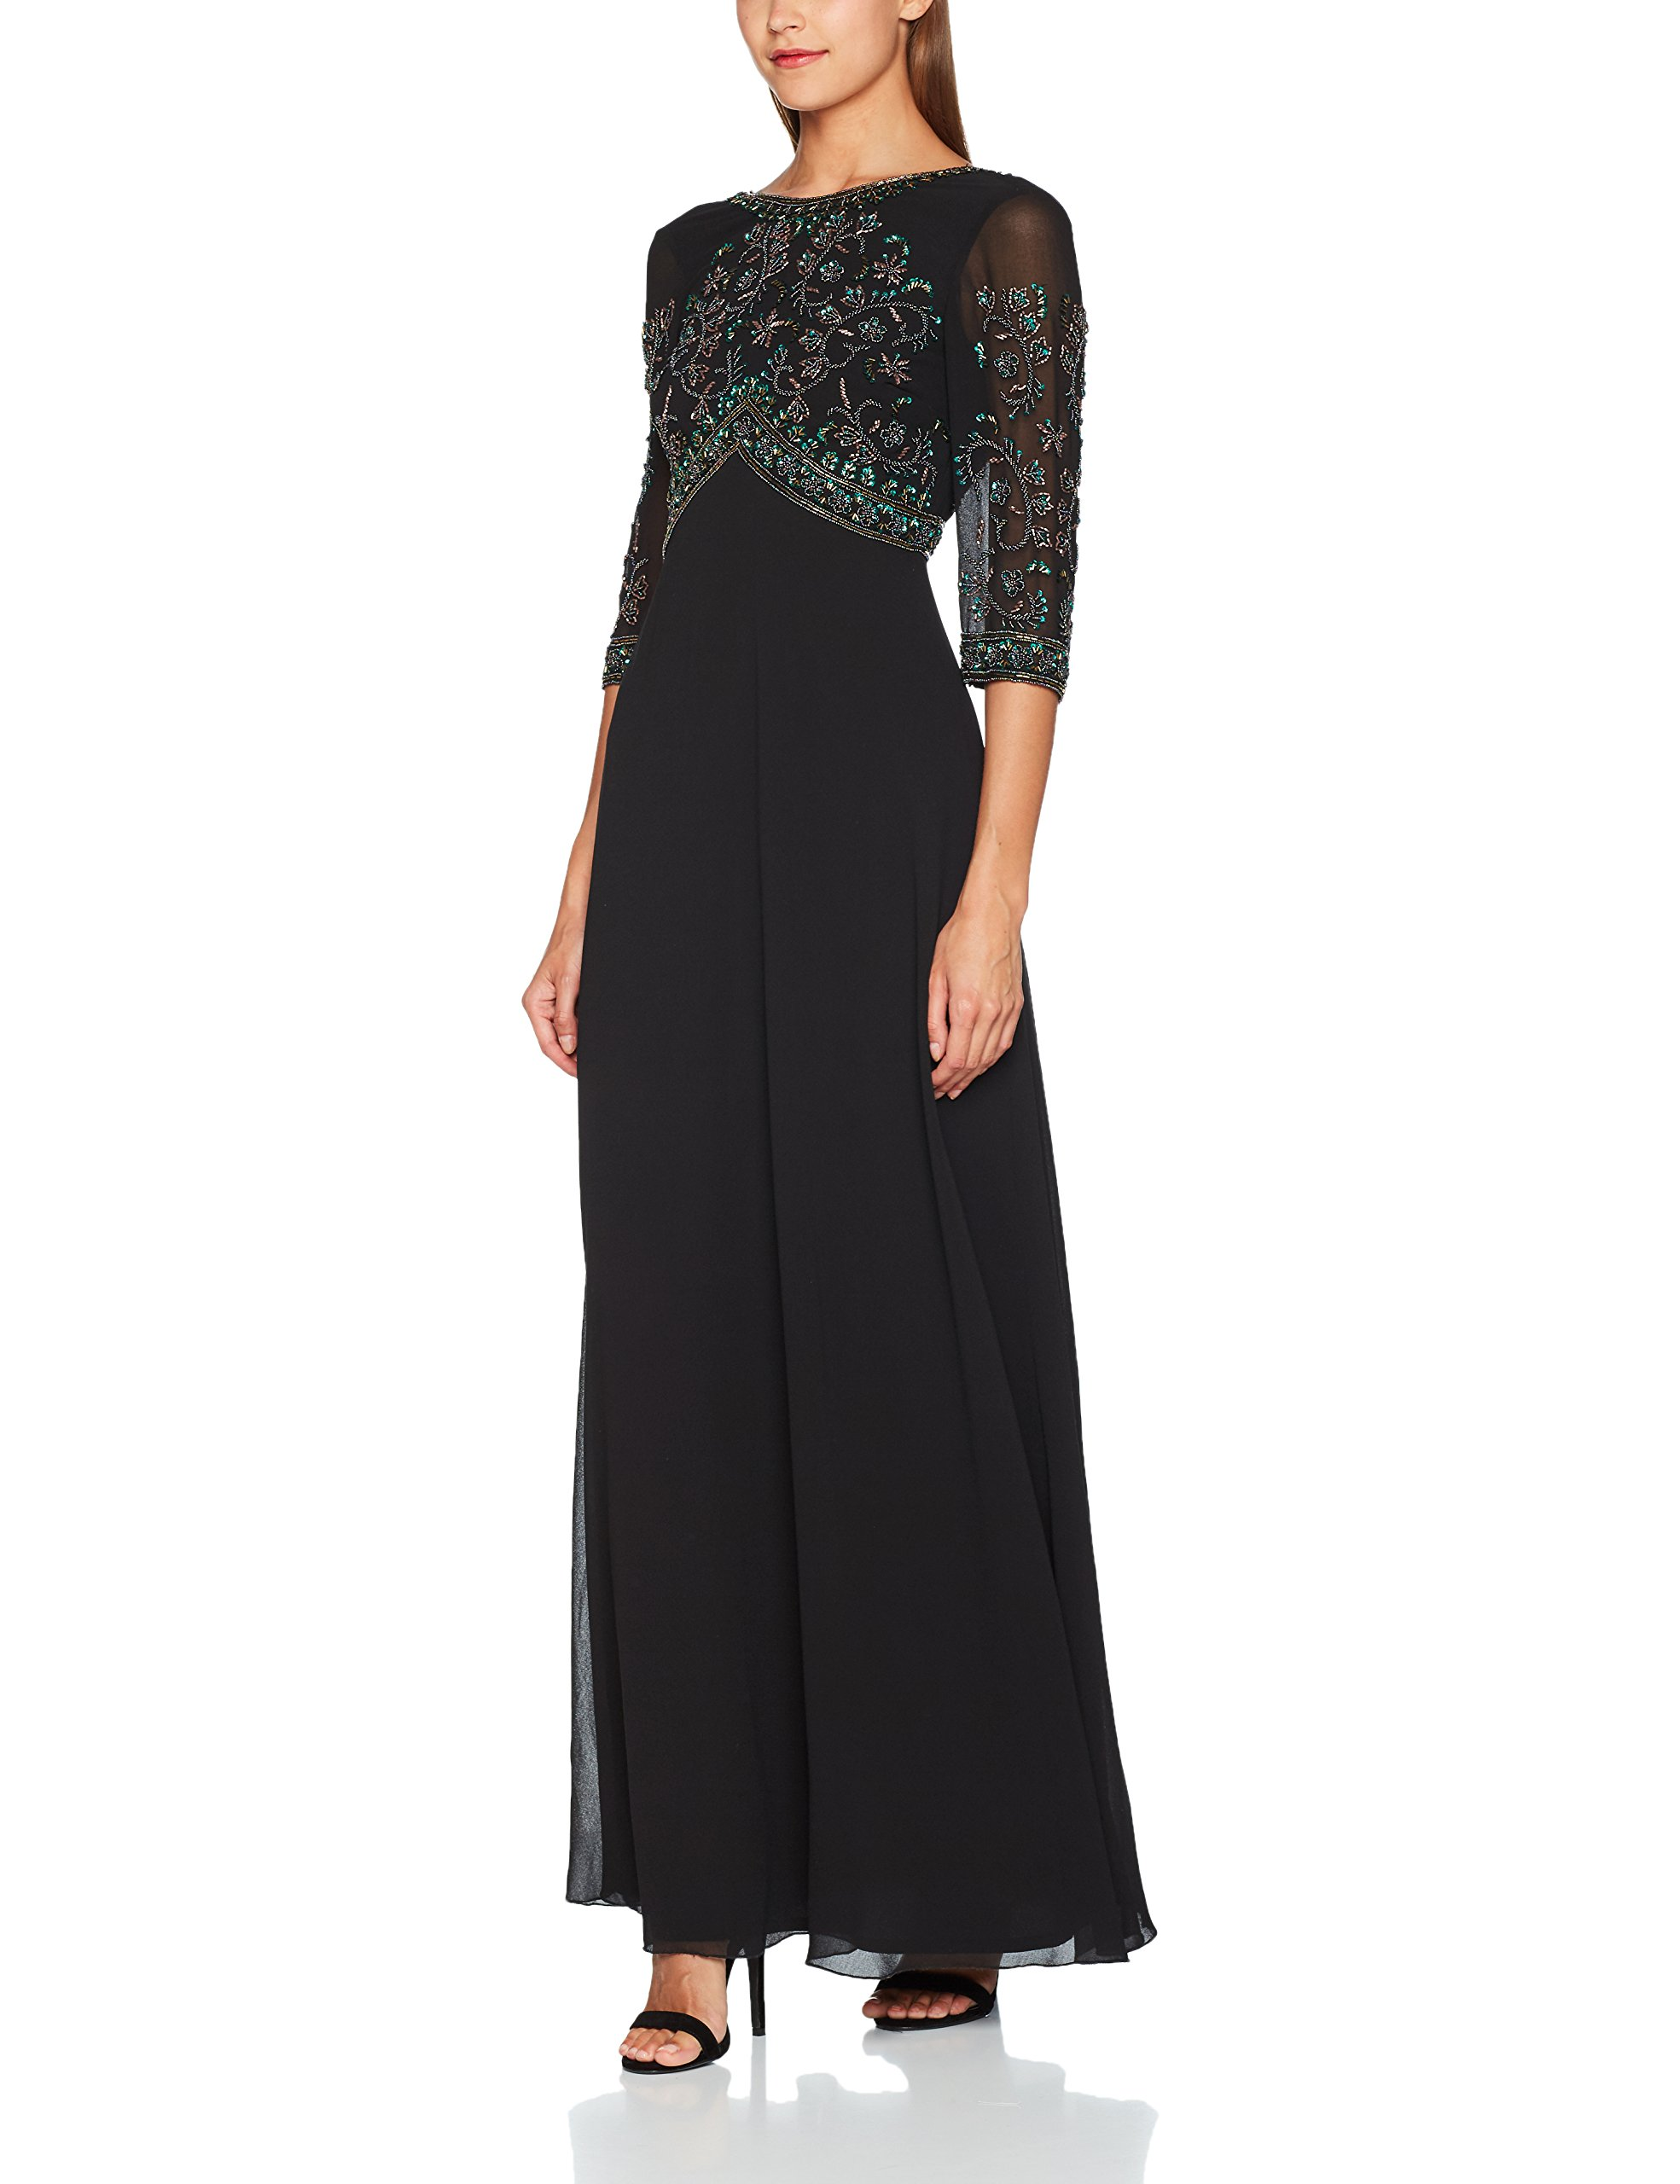 And Bhavya 4 Fabricant16 Cocktail 3 00000044taille Sequin Frill DressRobe FemmeNoirblack Maxi Manches Frock 4RL3Aj5